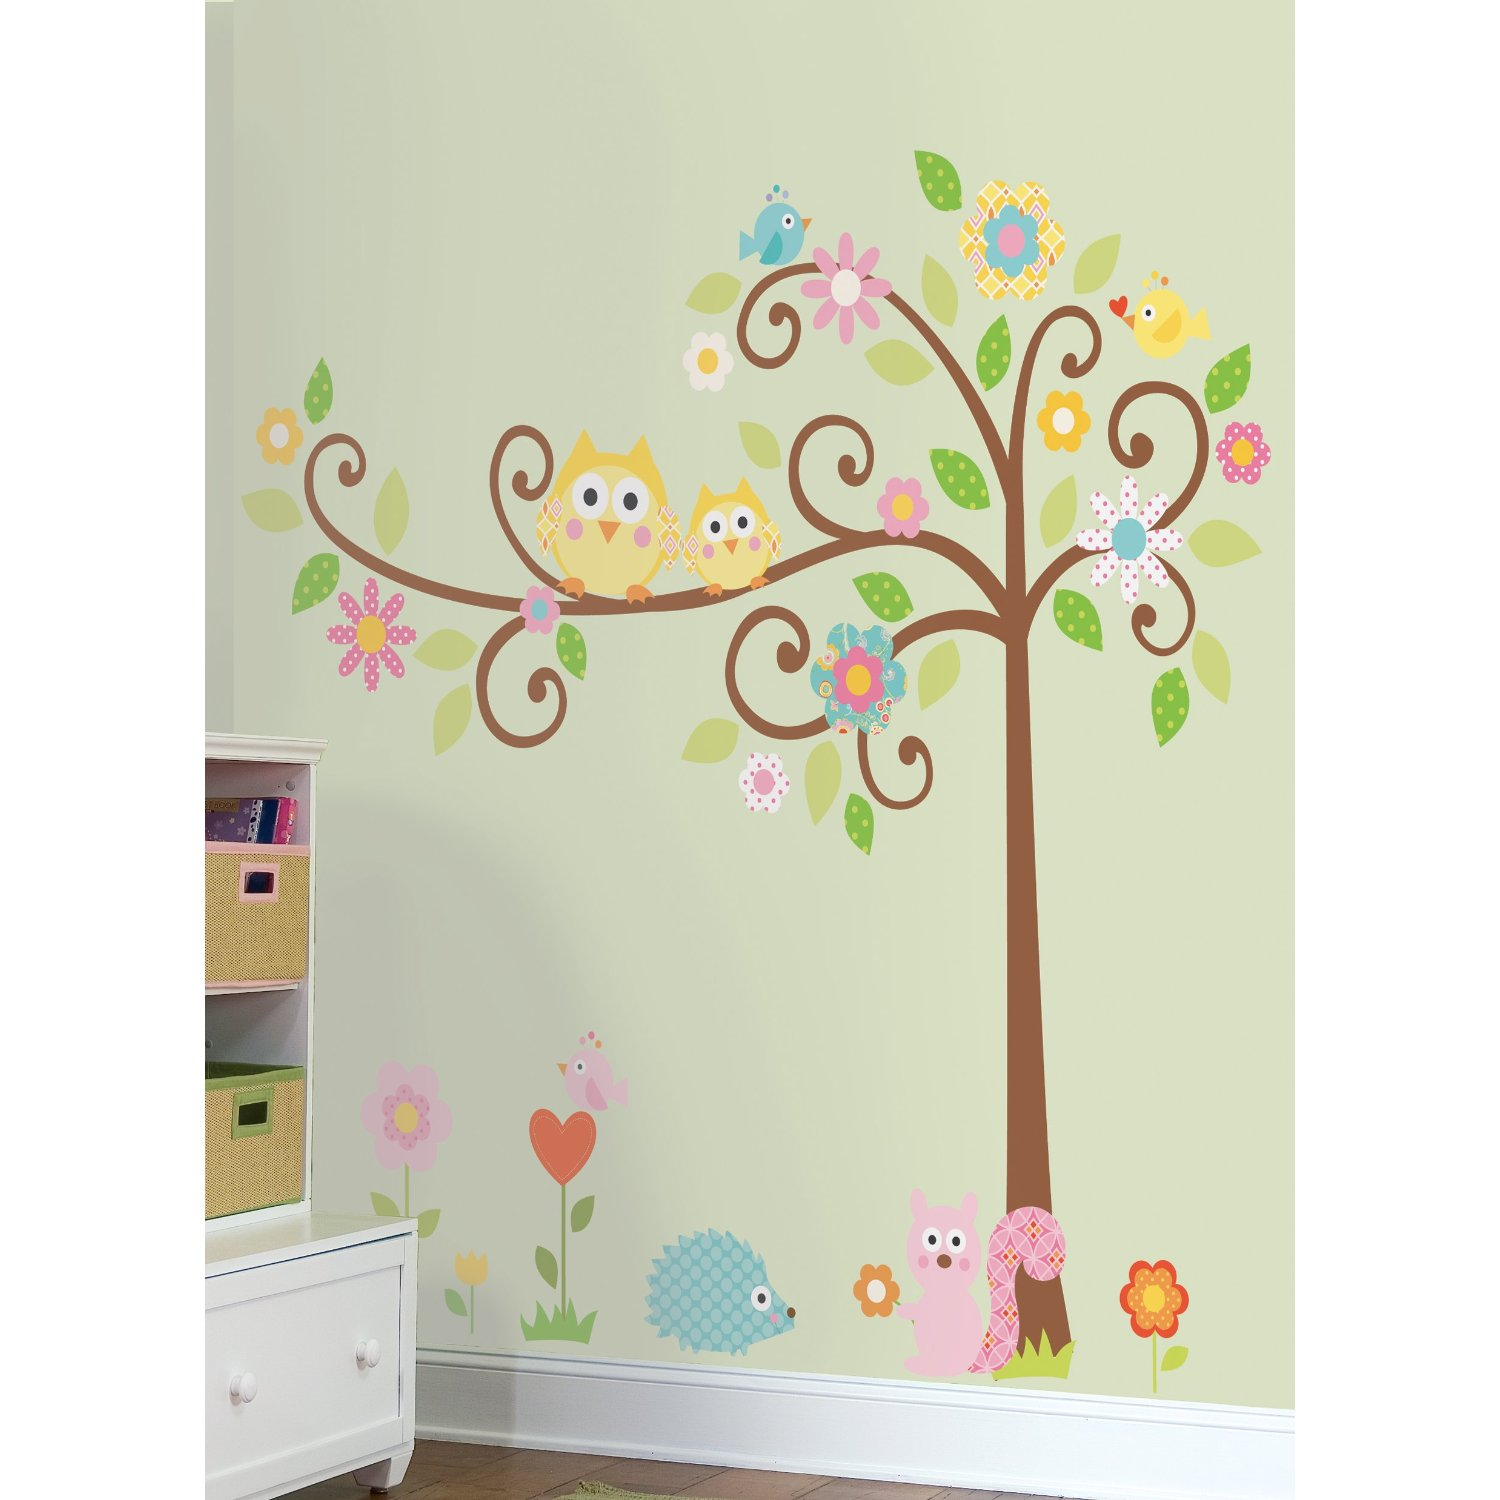 nursery room ideas nursery wall decals. Black Bedroom Furniture Sets. Home Design Ideas